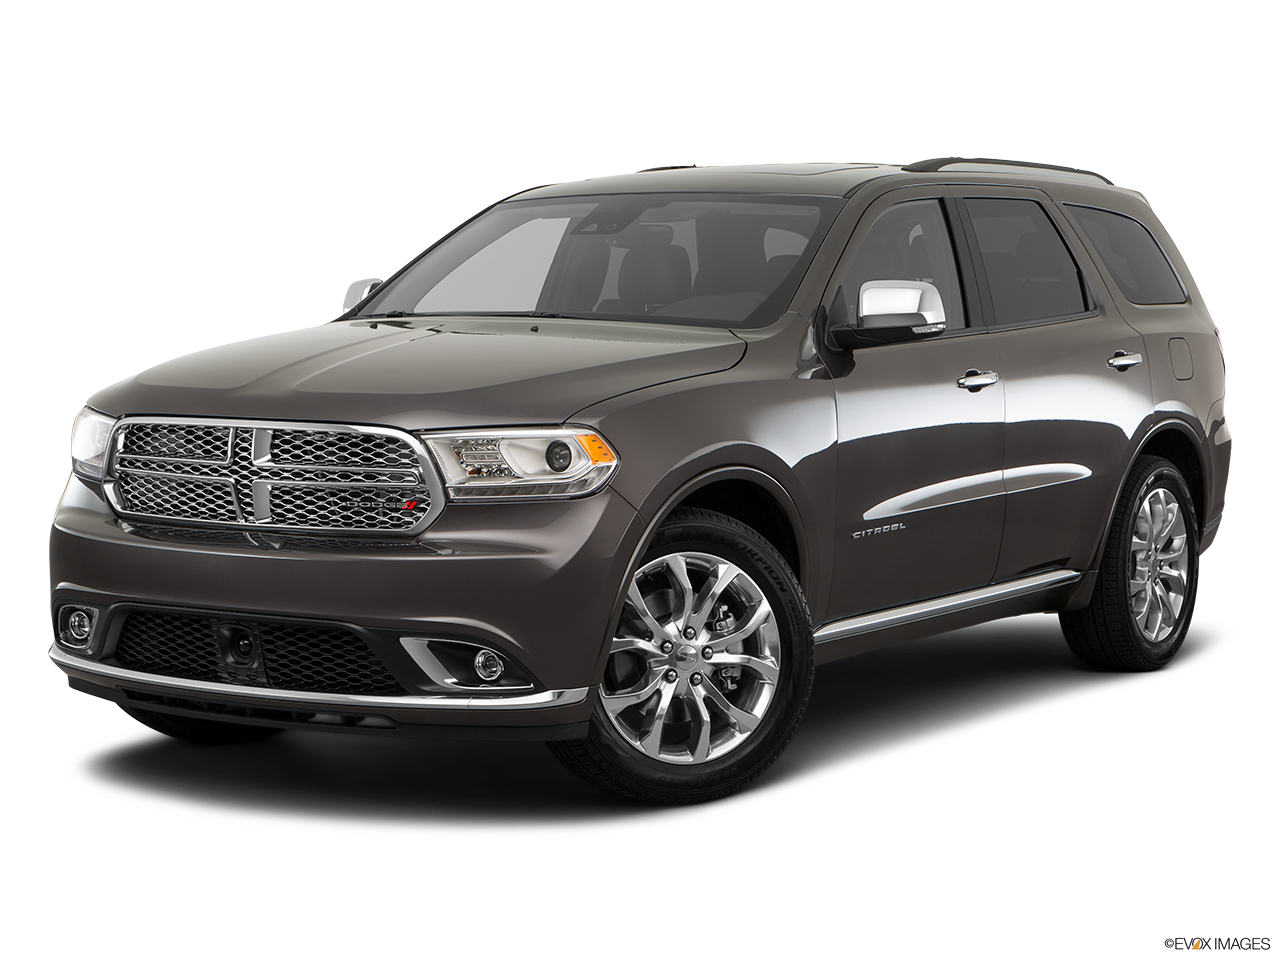 Test Drive A 2017 Dodge Durango at Arrigo Dodge Chrysler Jeep Ram Ft. Pierce in Fort Pierce